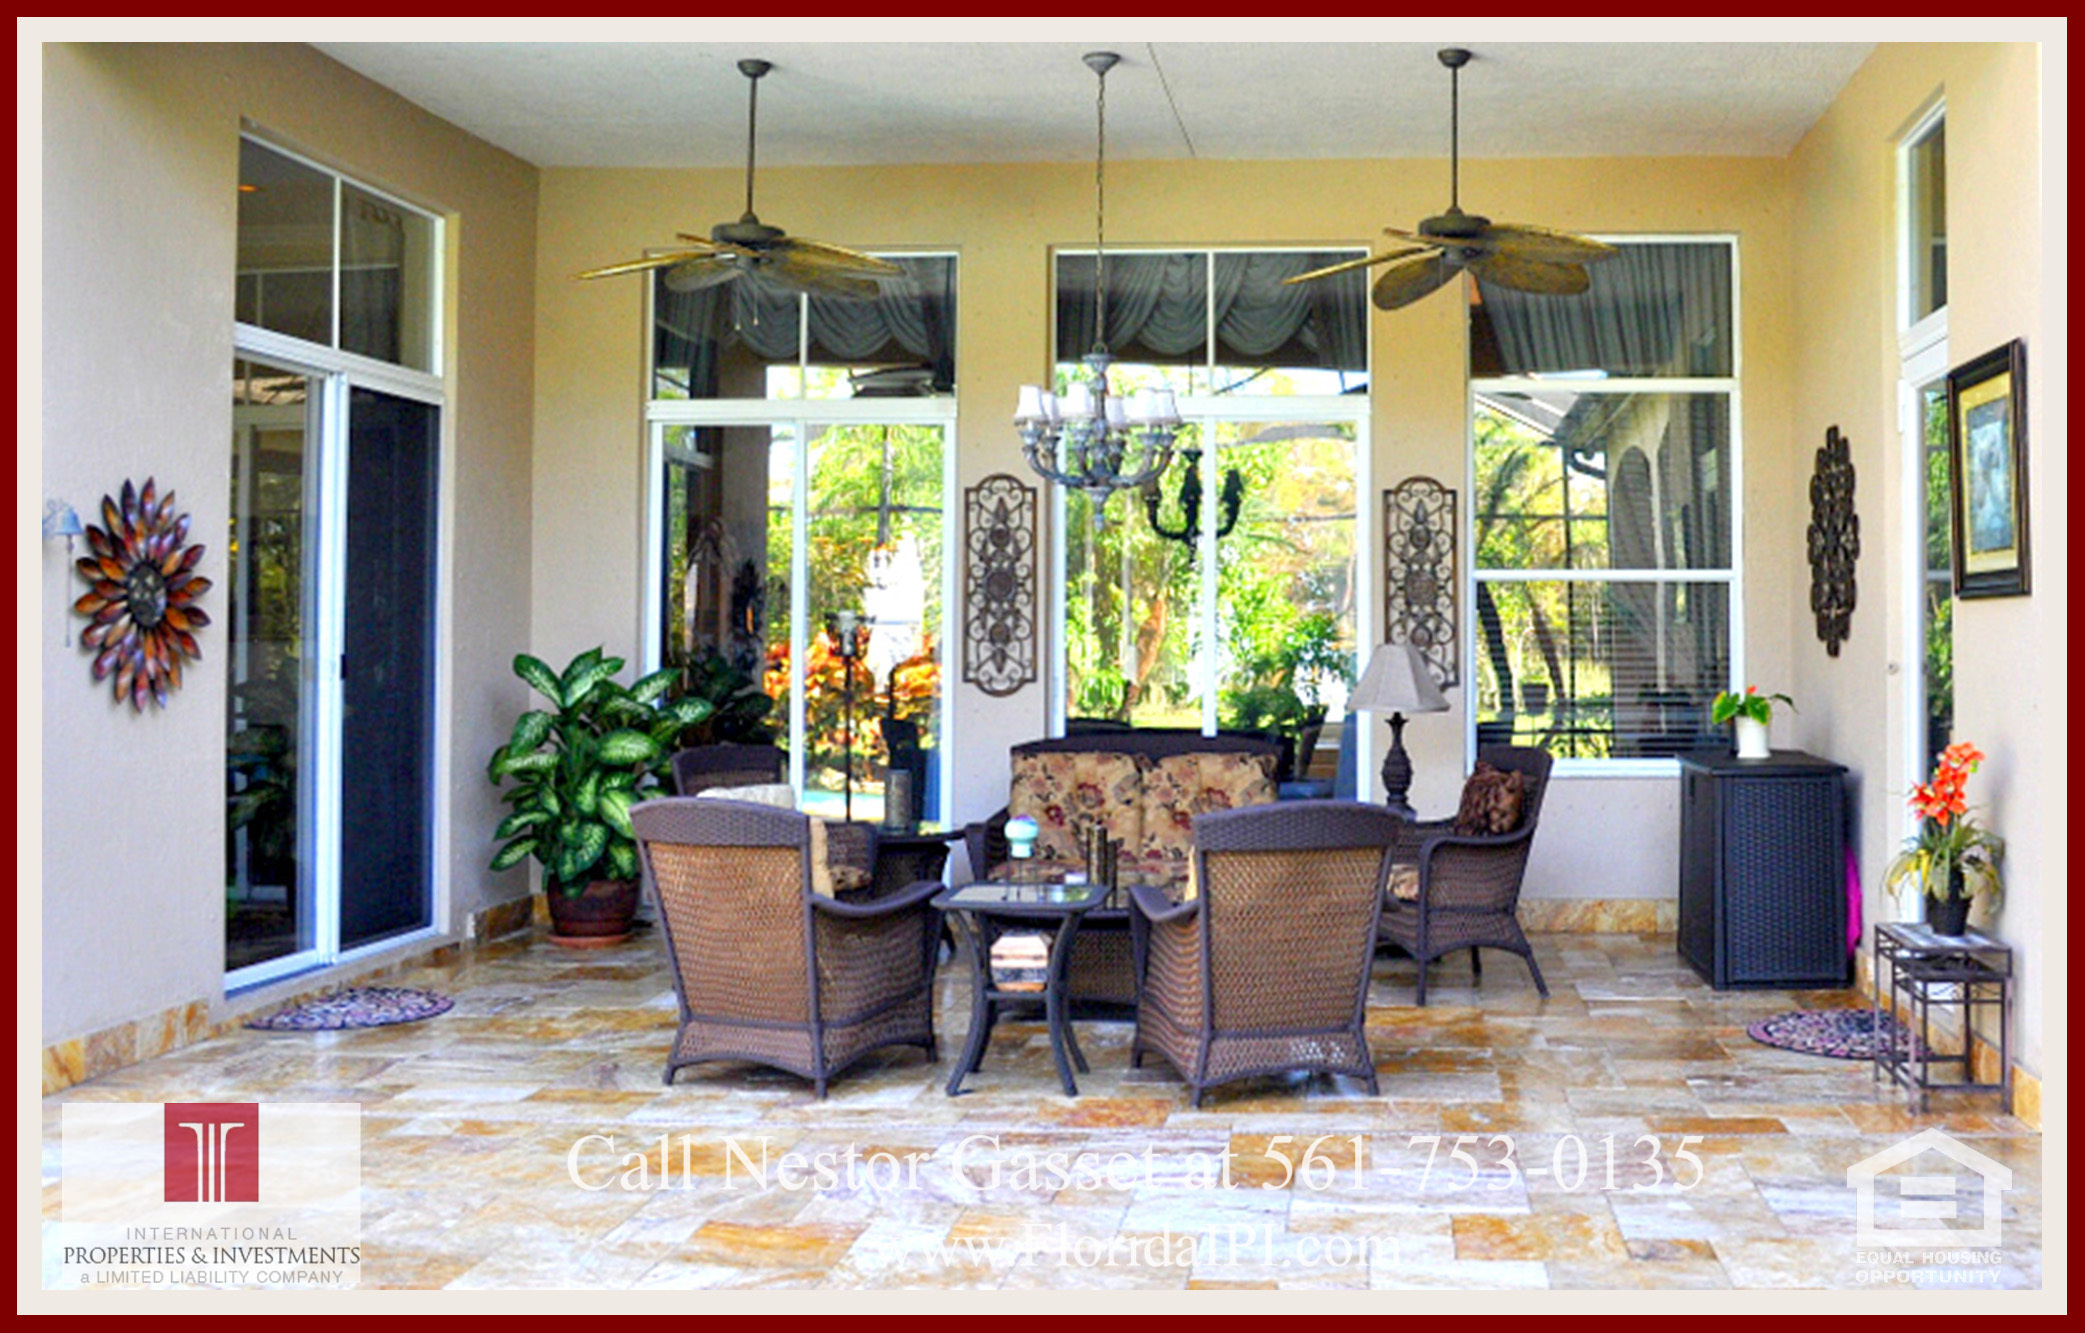 West Palm Beach Fl golf course community estate home for sale -This golf course community estate home for sale in West Palm Beach features a spacious patio that extends your entertainment space outdoors.